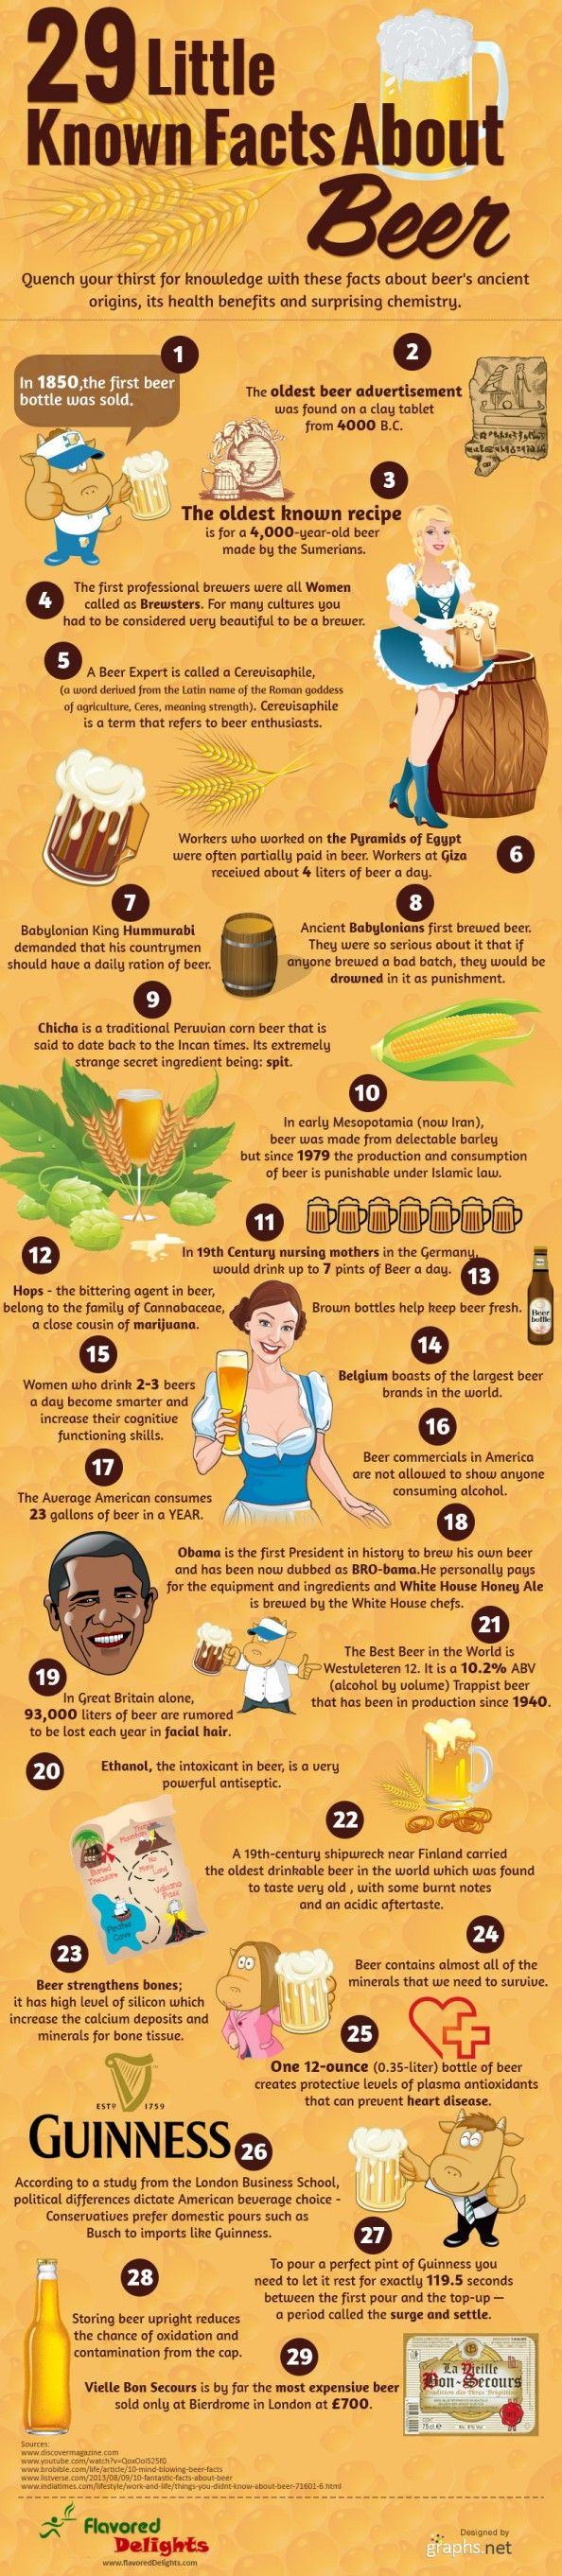 """29 Interesting Facts of Beer #Infographic  www.LiquorList.com """"The Marketplace for Adults with Taste!"""" @LiquorListcom   #LiquorList.com"""